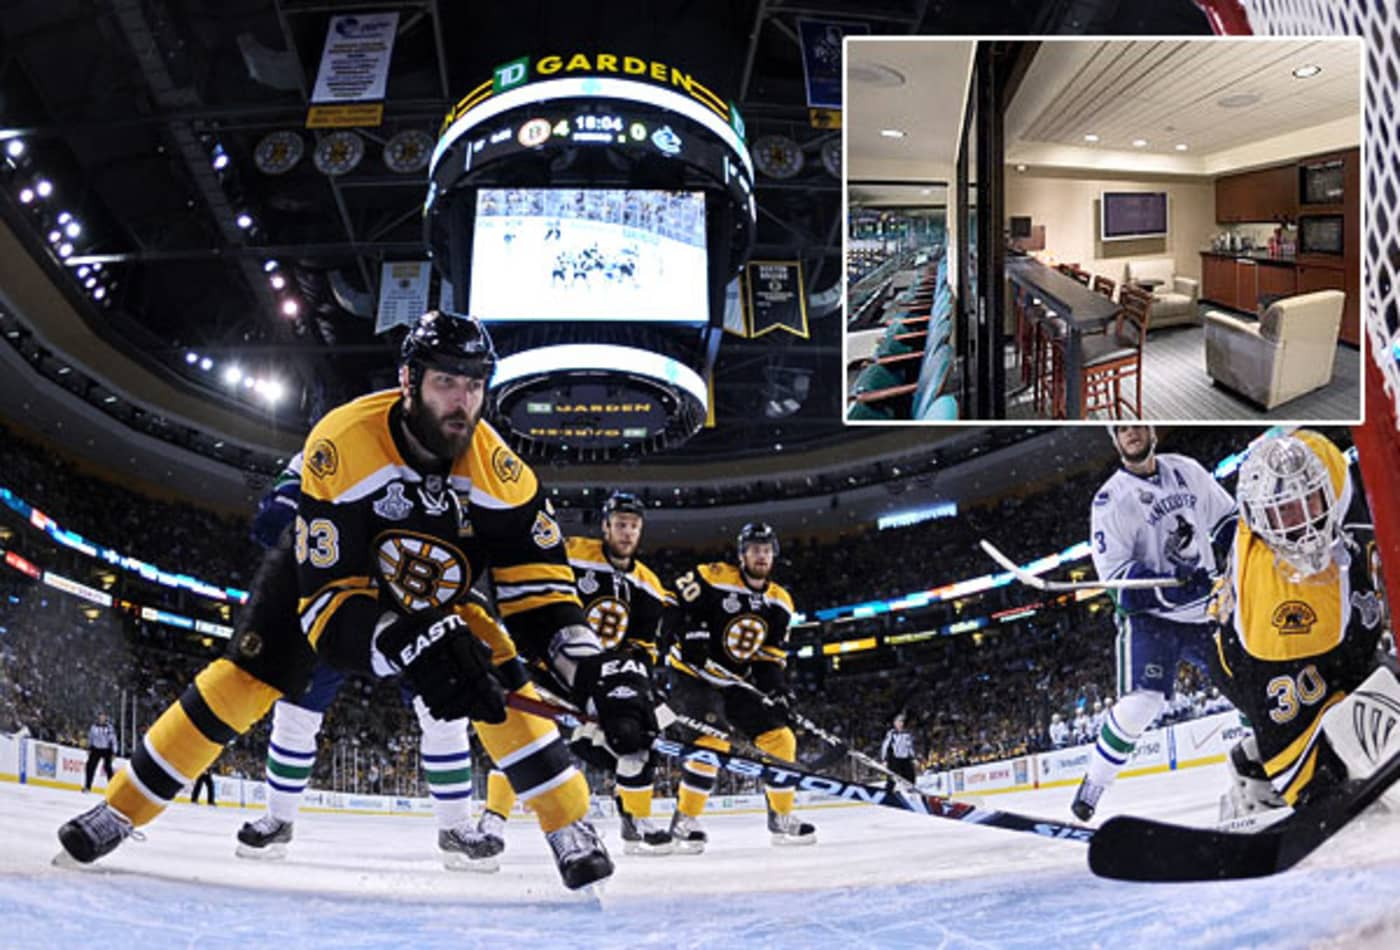 NHL-Stanley-Cup-TD-Garden-Boston-Most-Expensive-Luxury-Suites-CNBC..jpg